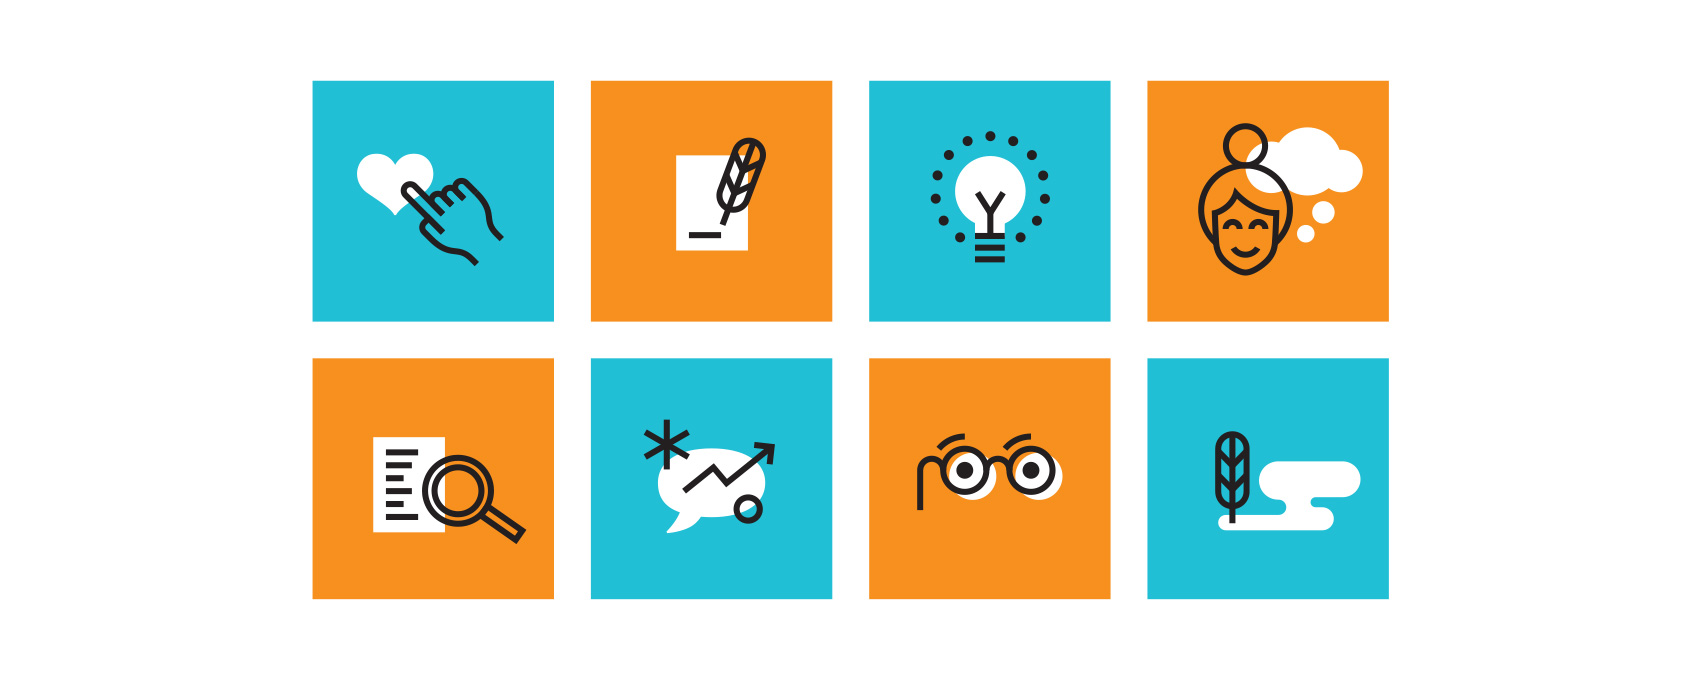 Series of icons for law firm including quill pen signing, light bulb, search function, smart glasses, signature bubble, conversation and thought bubble.